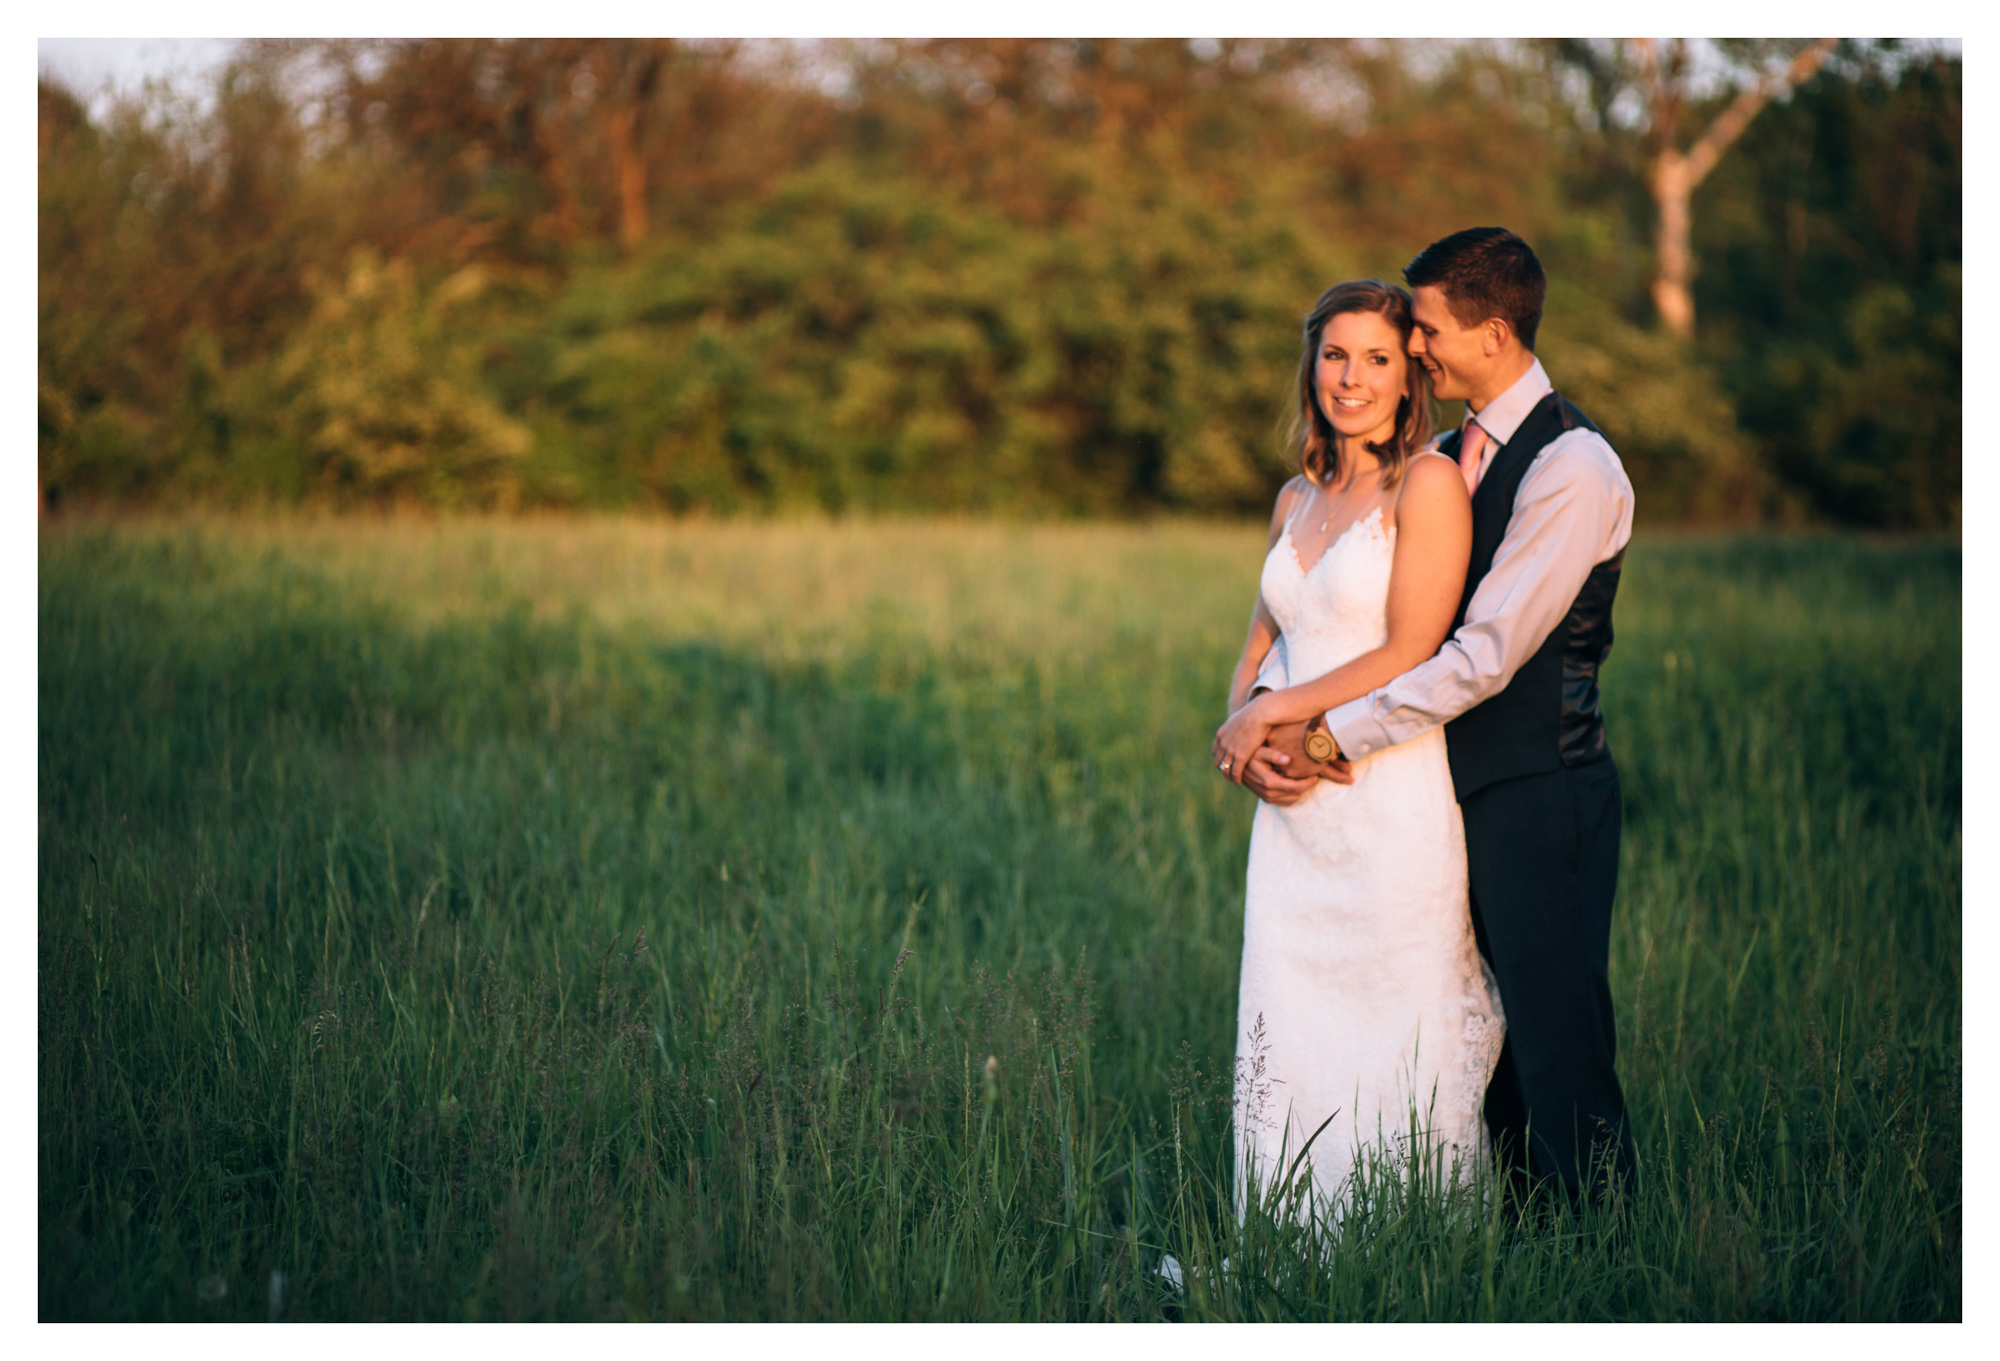 Canopy creek wedding photography 34